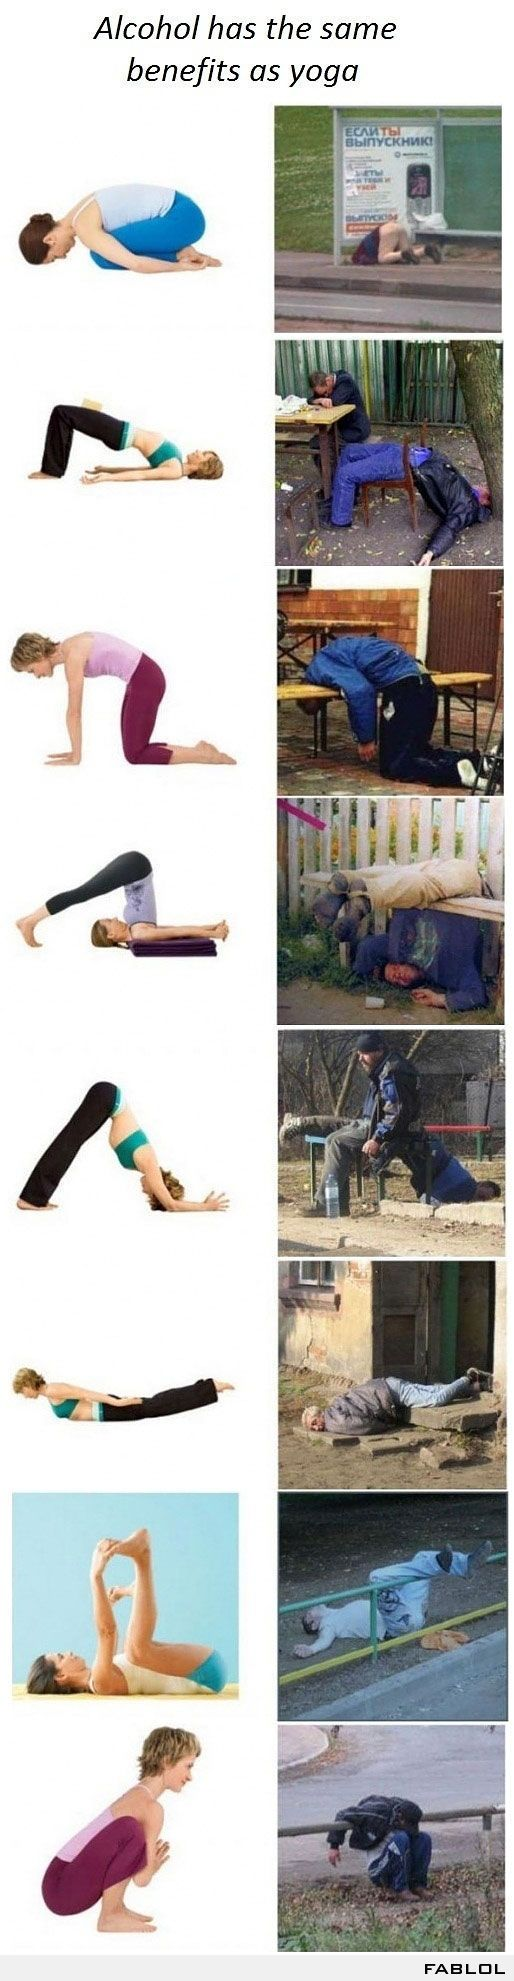 Alcohol Induced Yoga Exercises - FABLOL - Daily funny pictures and gifs;)